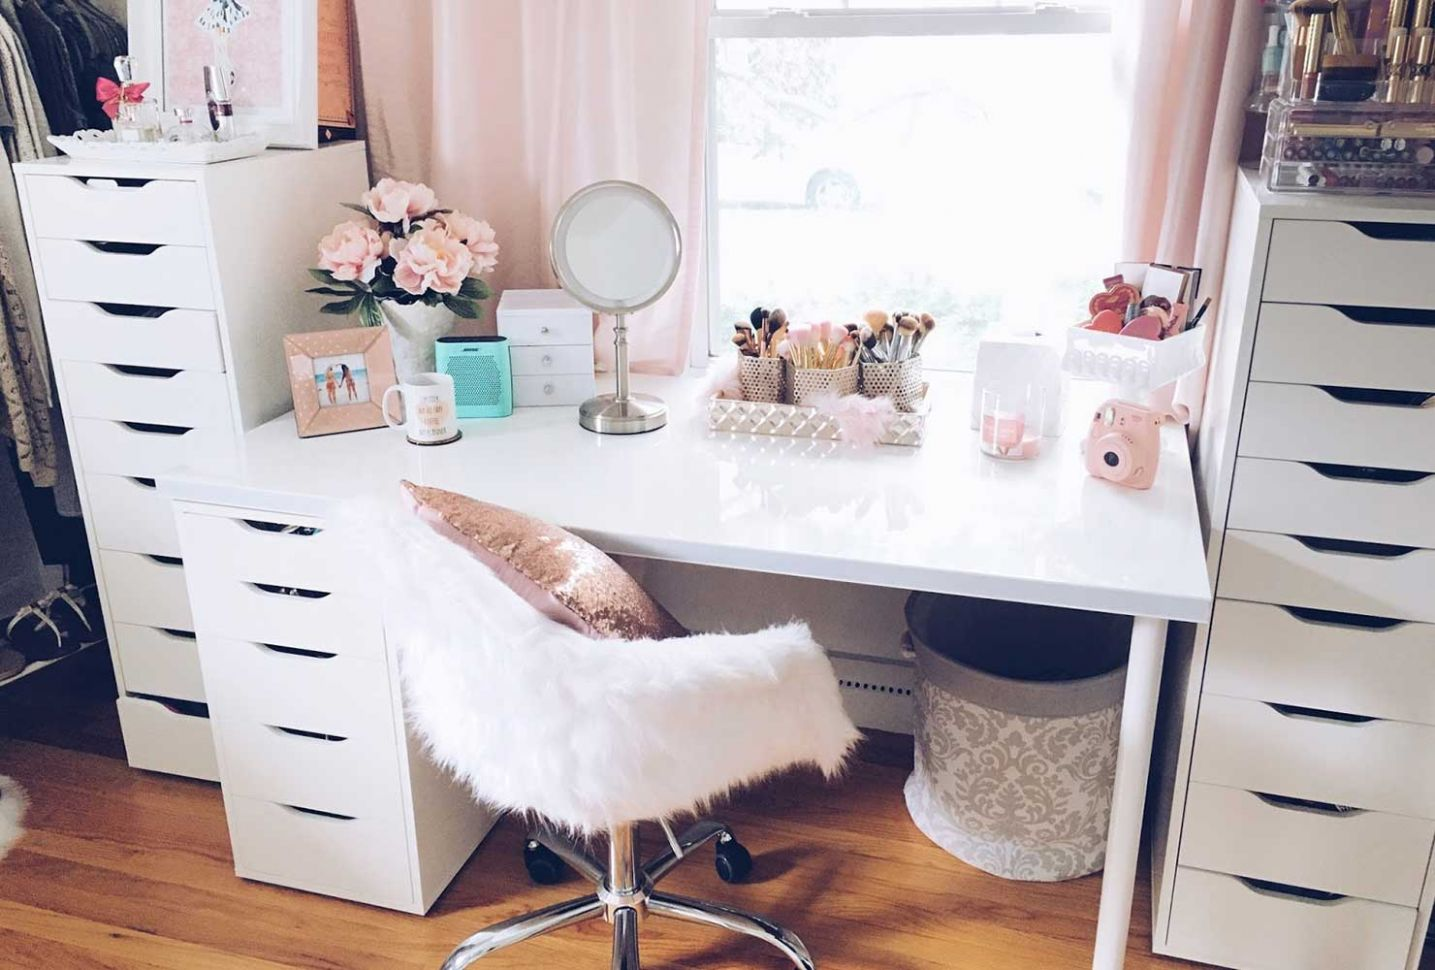 12 Makeup Room Ideas To Brighten Your Morning Routine | Shutterfly - makeup room chair